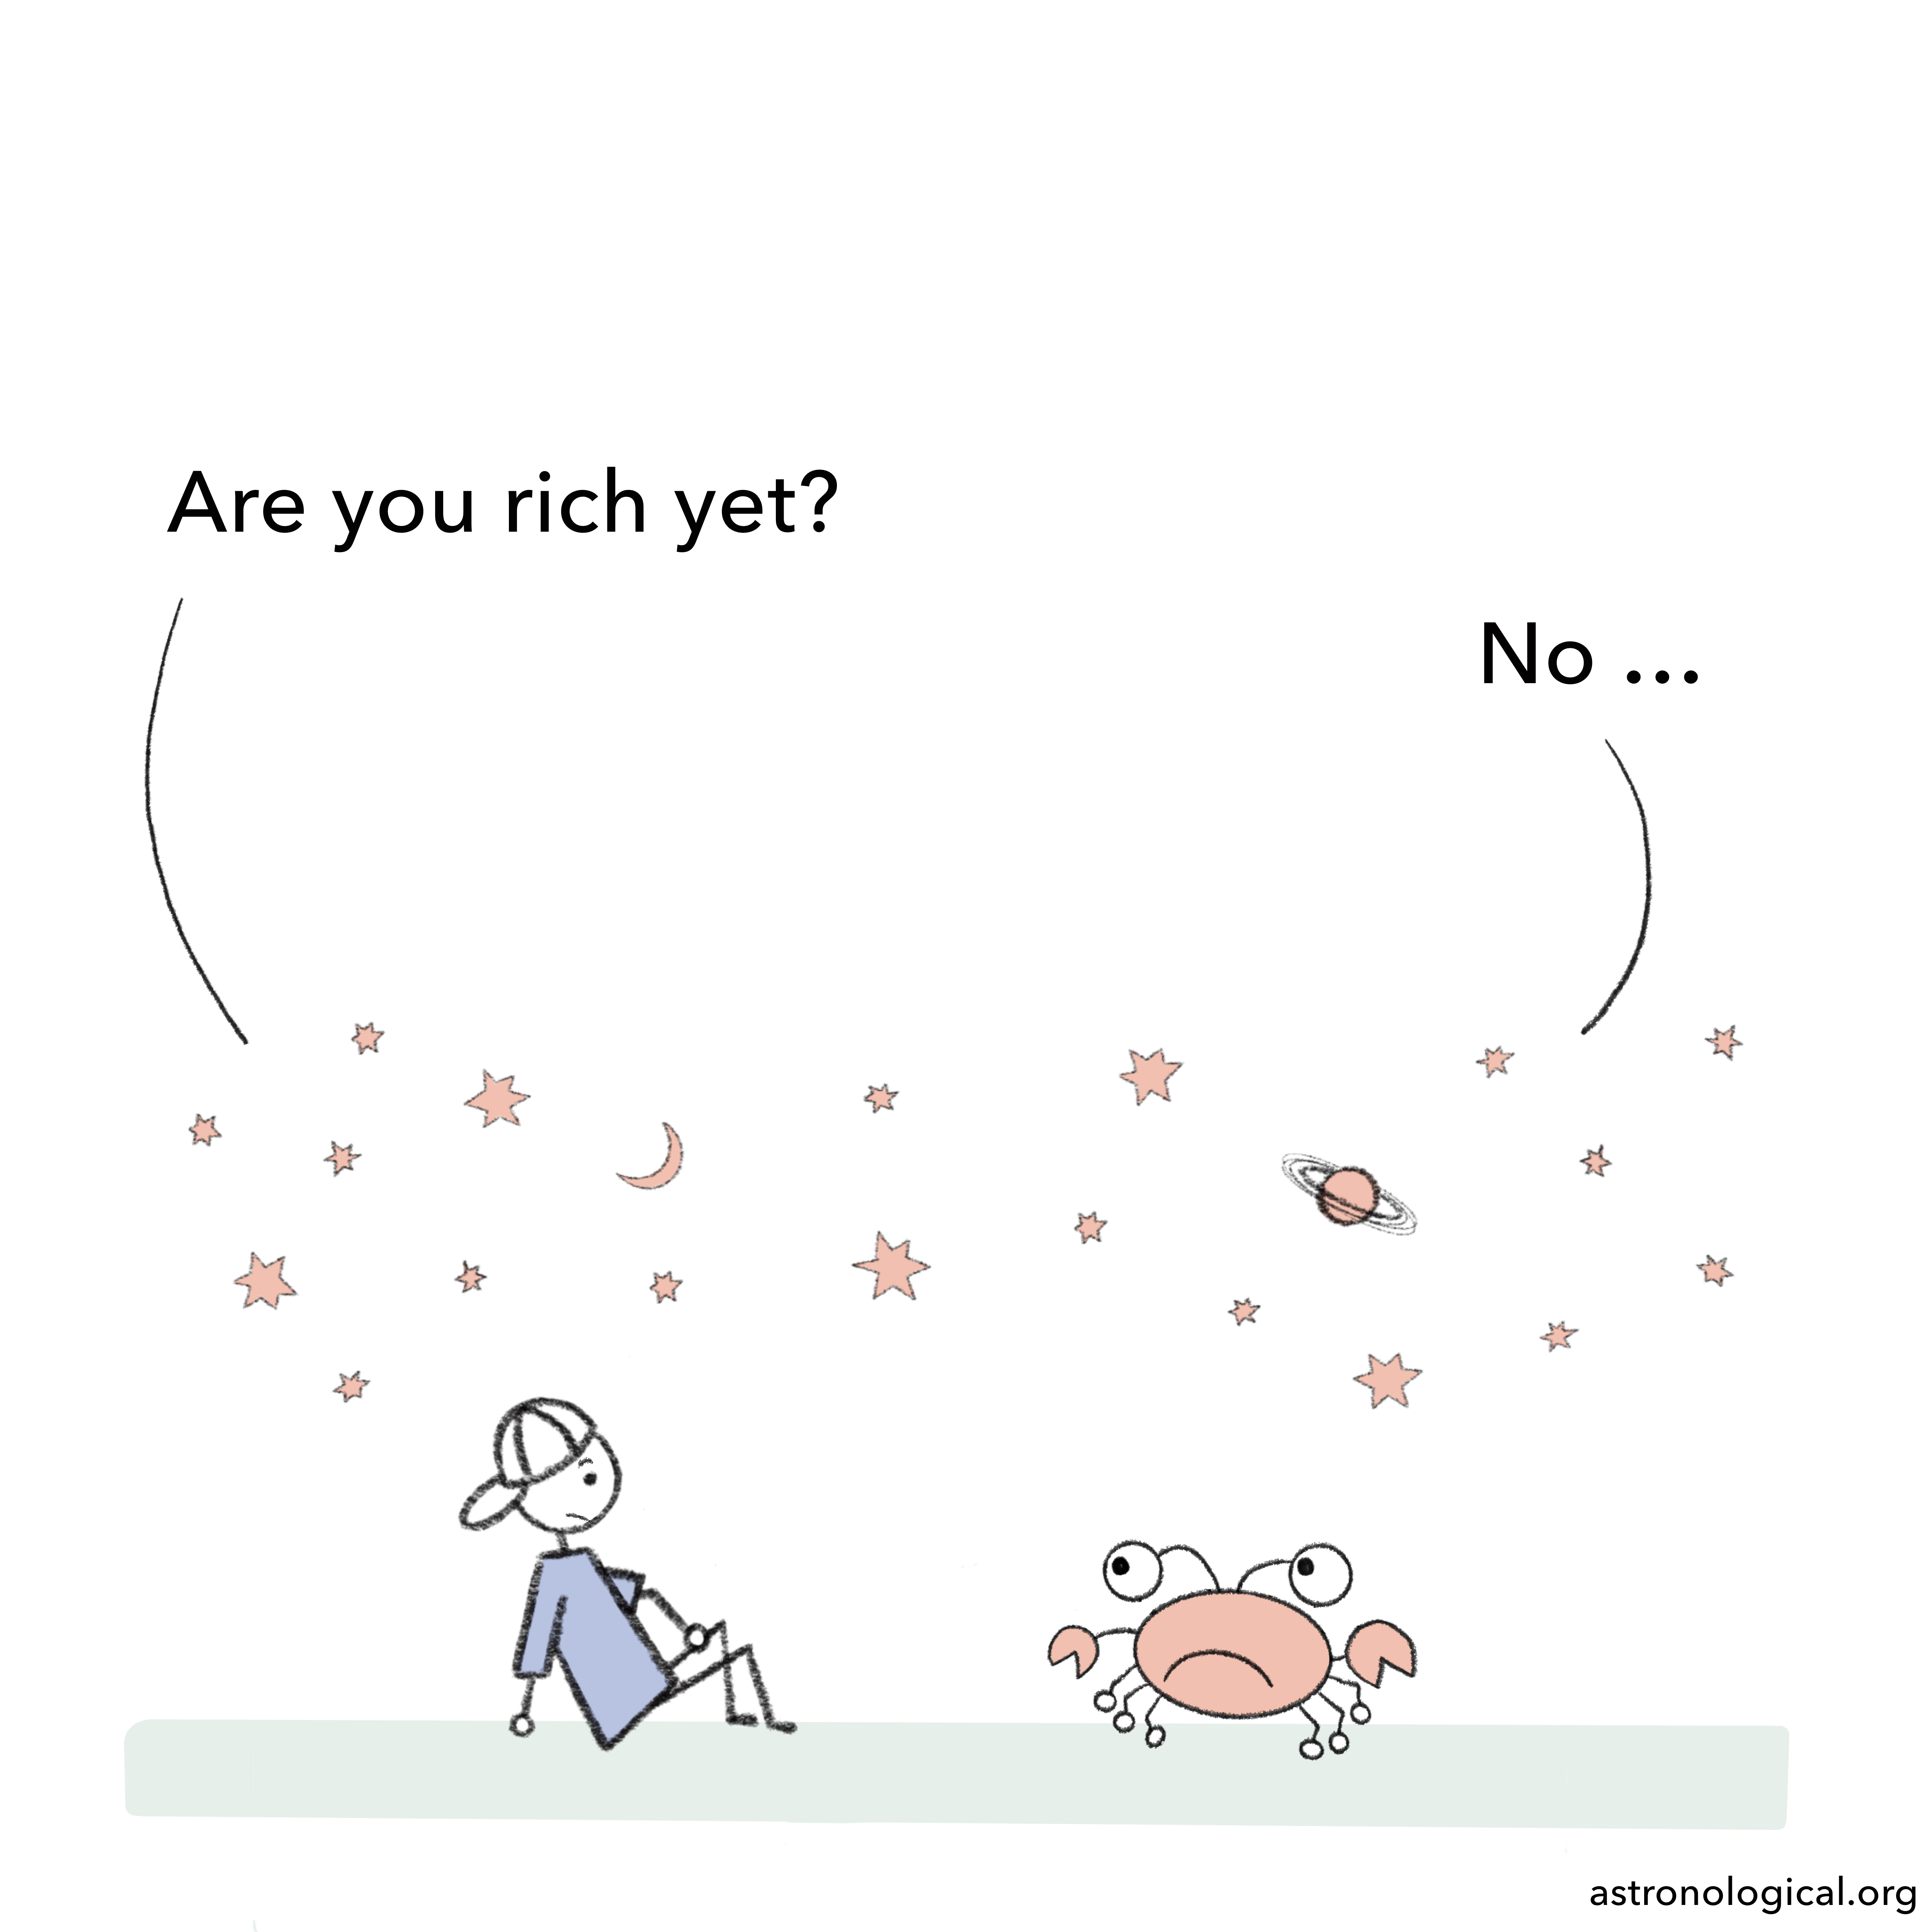 The guy asks: Are you rich yet? The crab despondently replies: No.